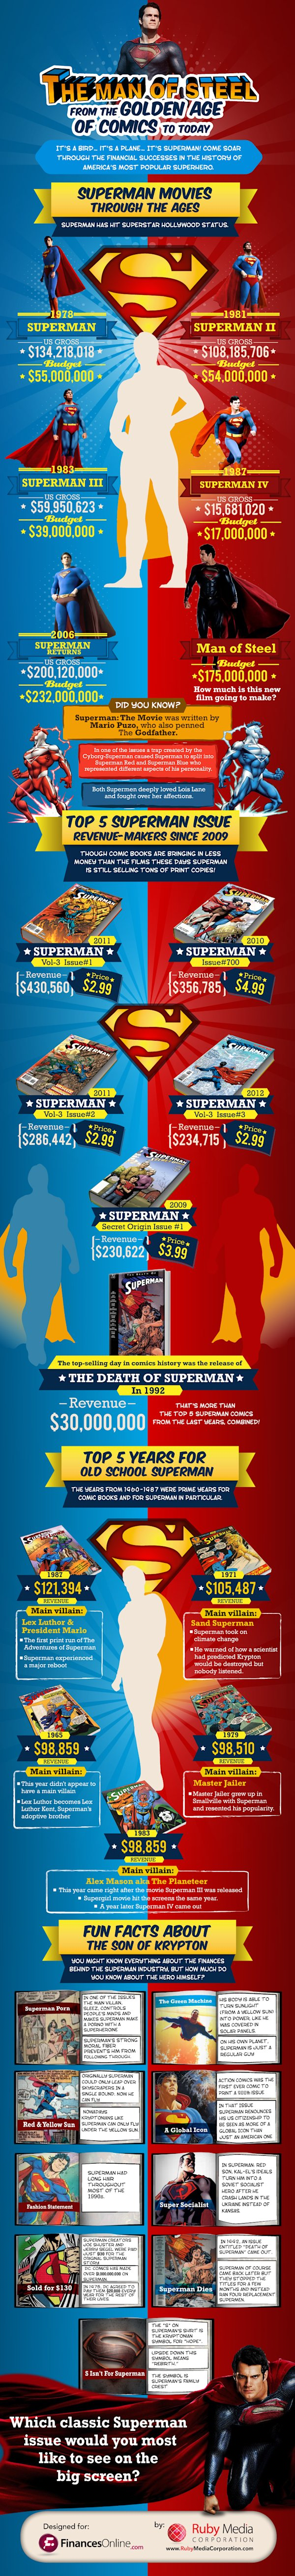 Superman: From the Golden Age of Comics to Today